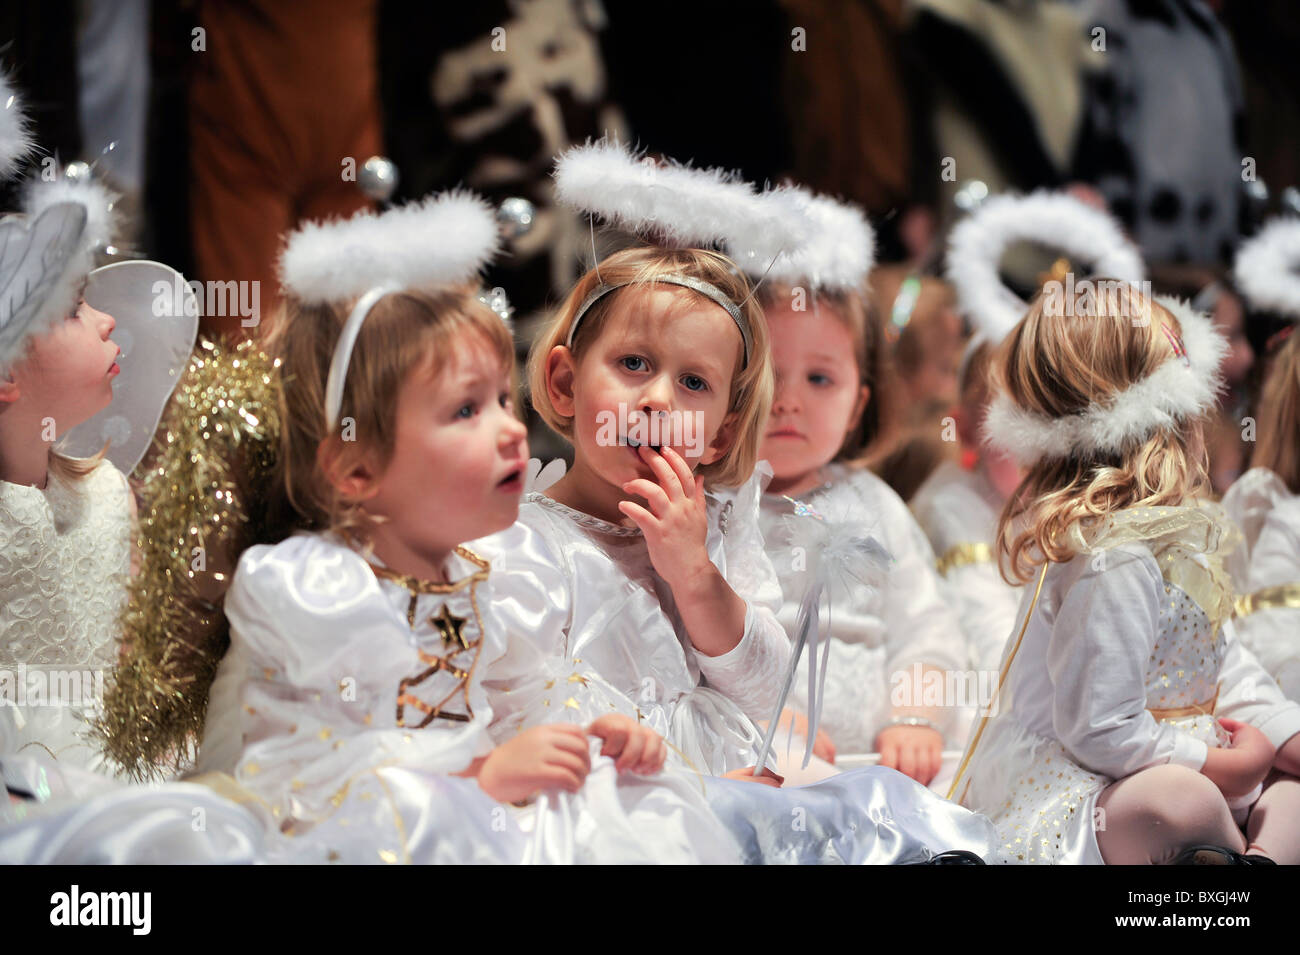 Children dressed as angels performing in a primary school christmas nativity play, UK - Stock Image